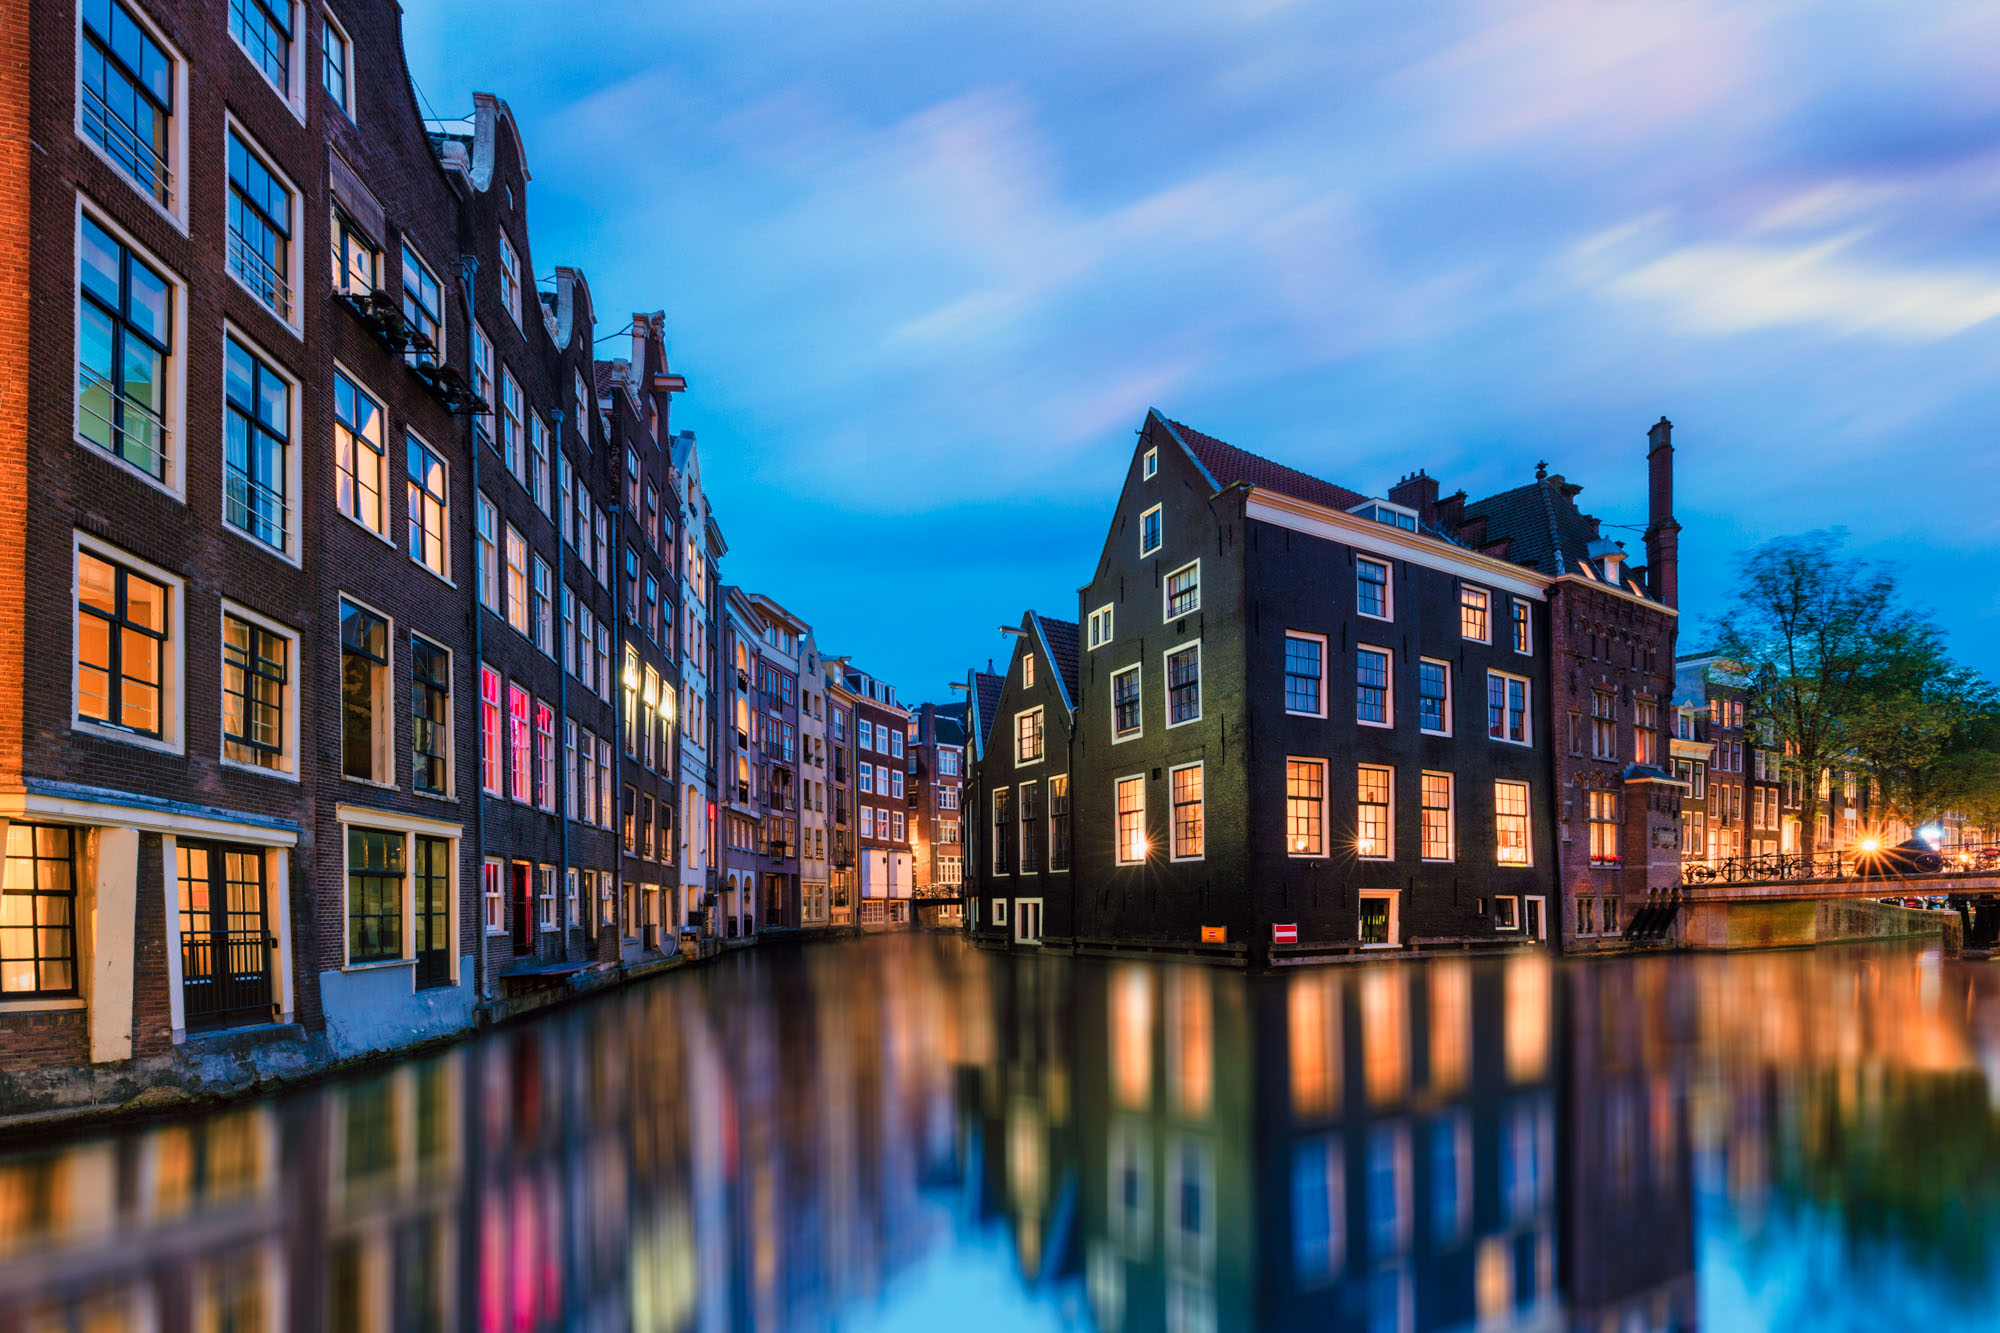 long exposure photography of the architecture in Amsterdam at night beside a canal in The Netherlands